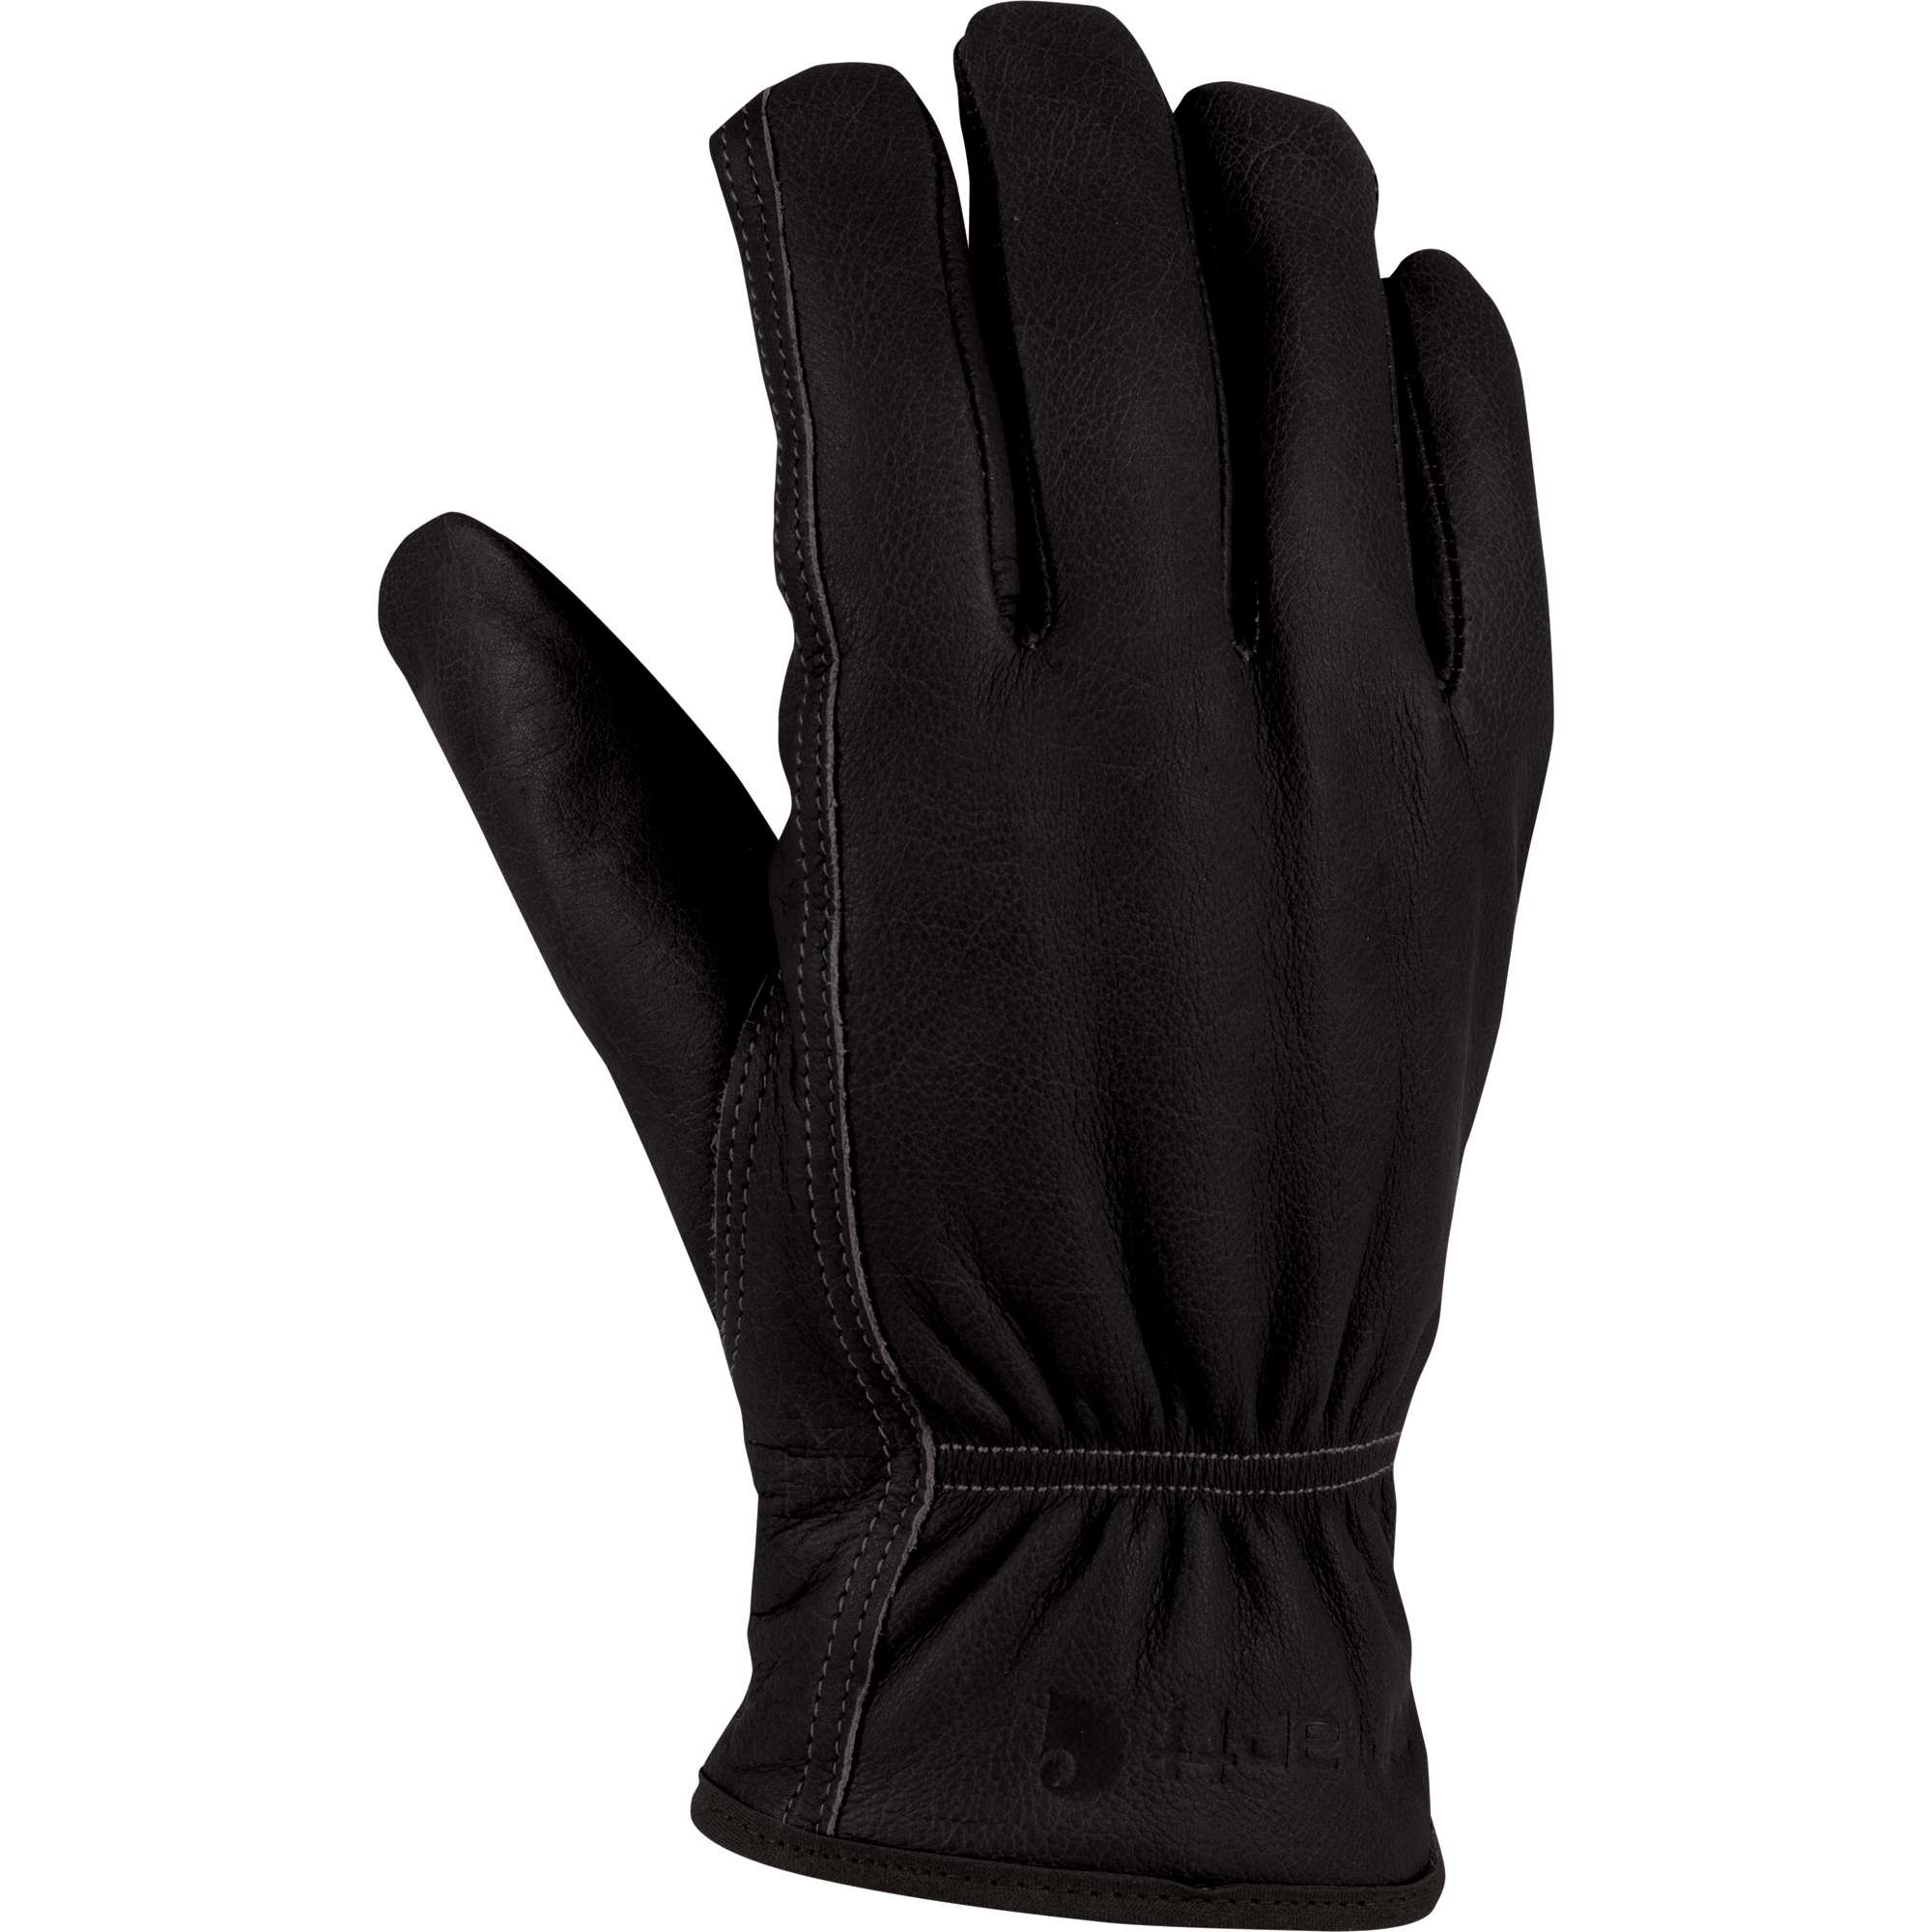 photo: Carhartt Insulated Leather Driver Glove insulated glove/mitten